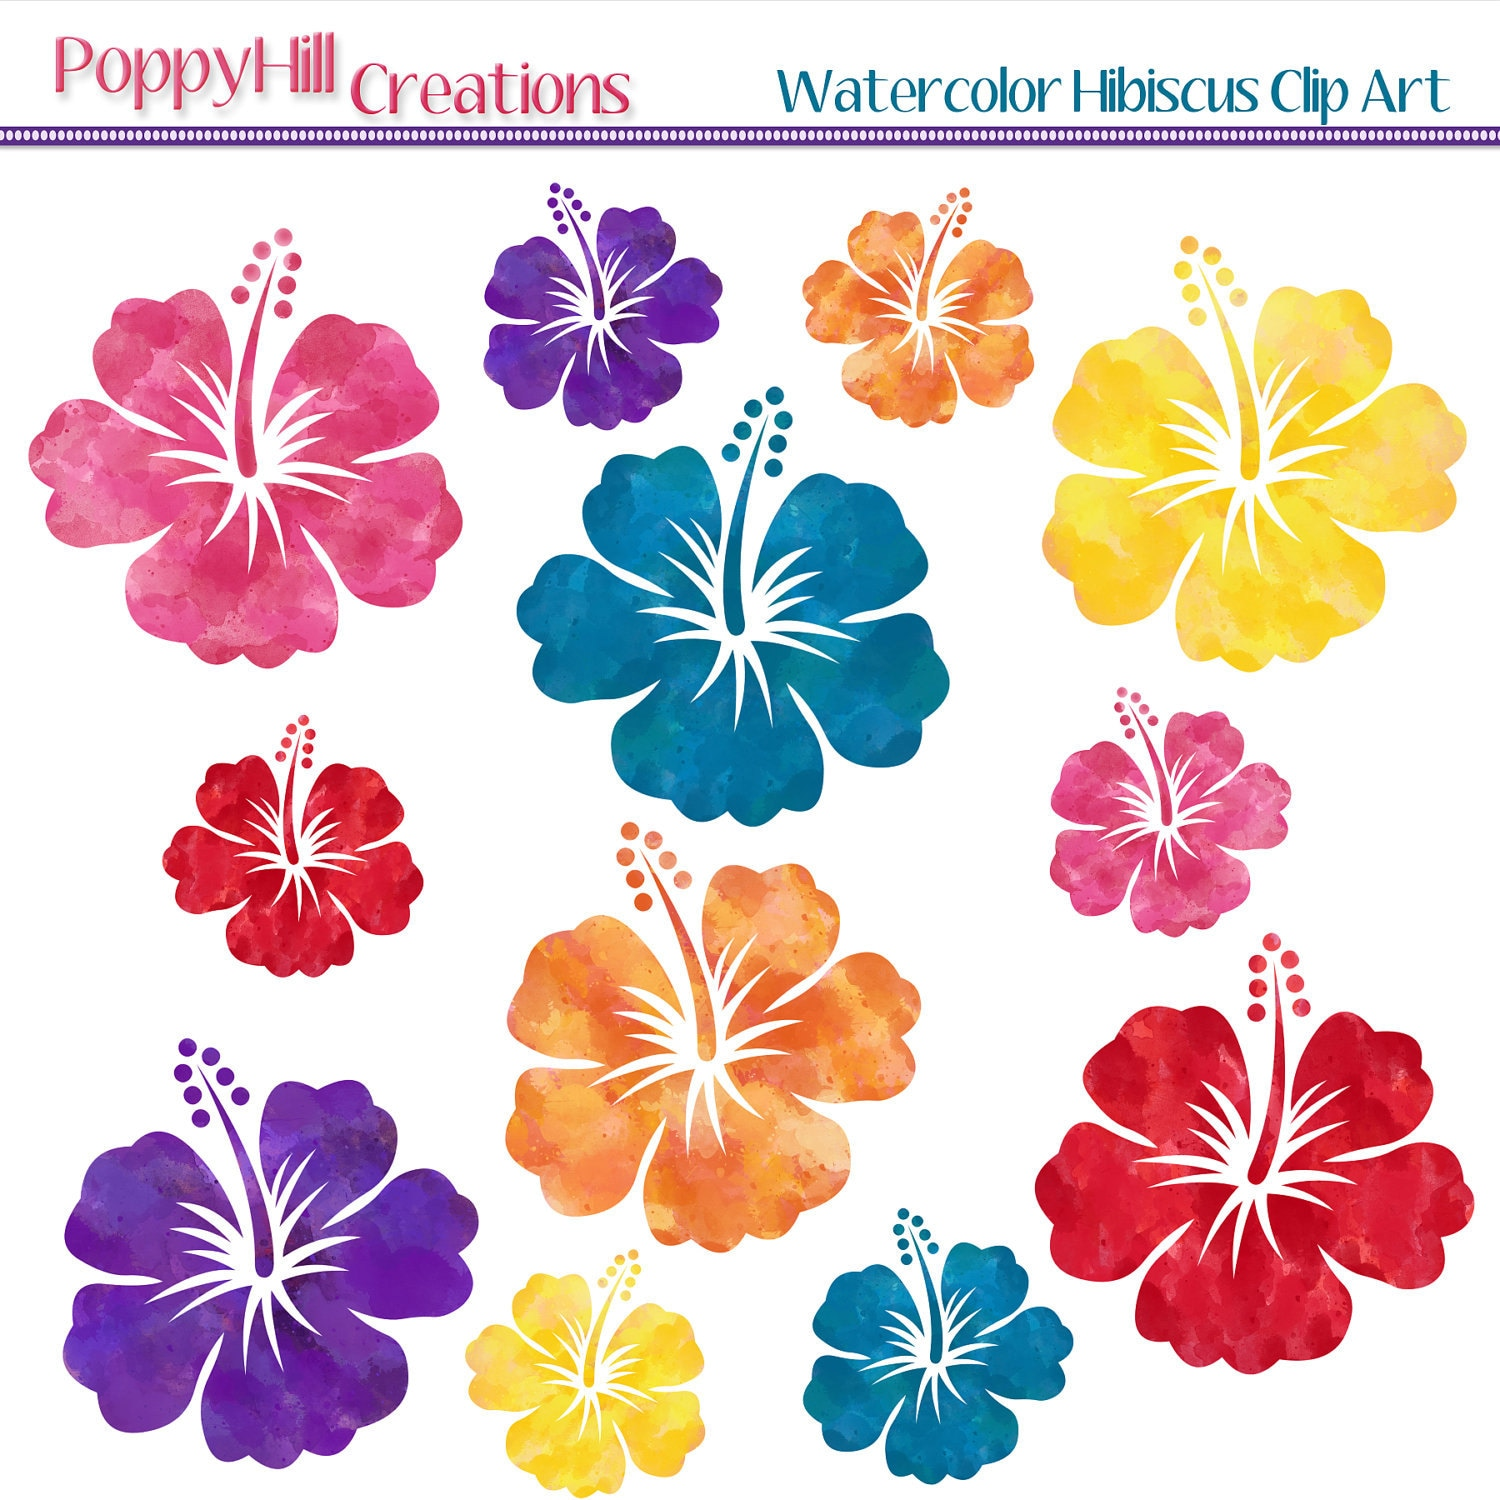 Watercolor Hibiscus Digital Clip Art - Red, Yellow, Orange, Pink, Purple, Teal - For Personal and Commercial Use - Digital Designs